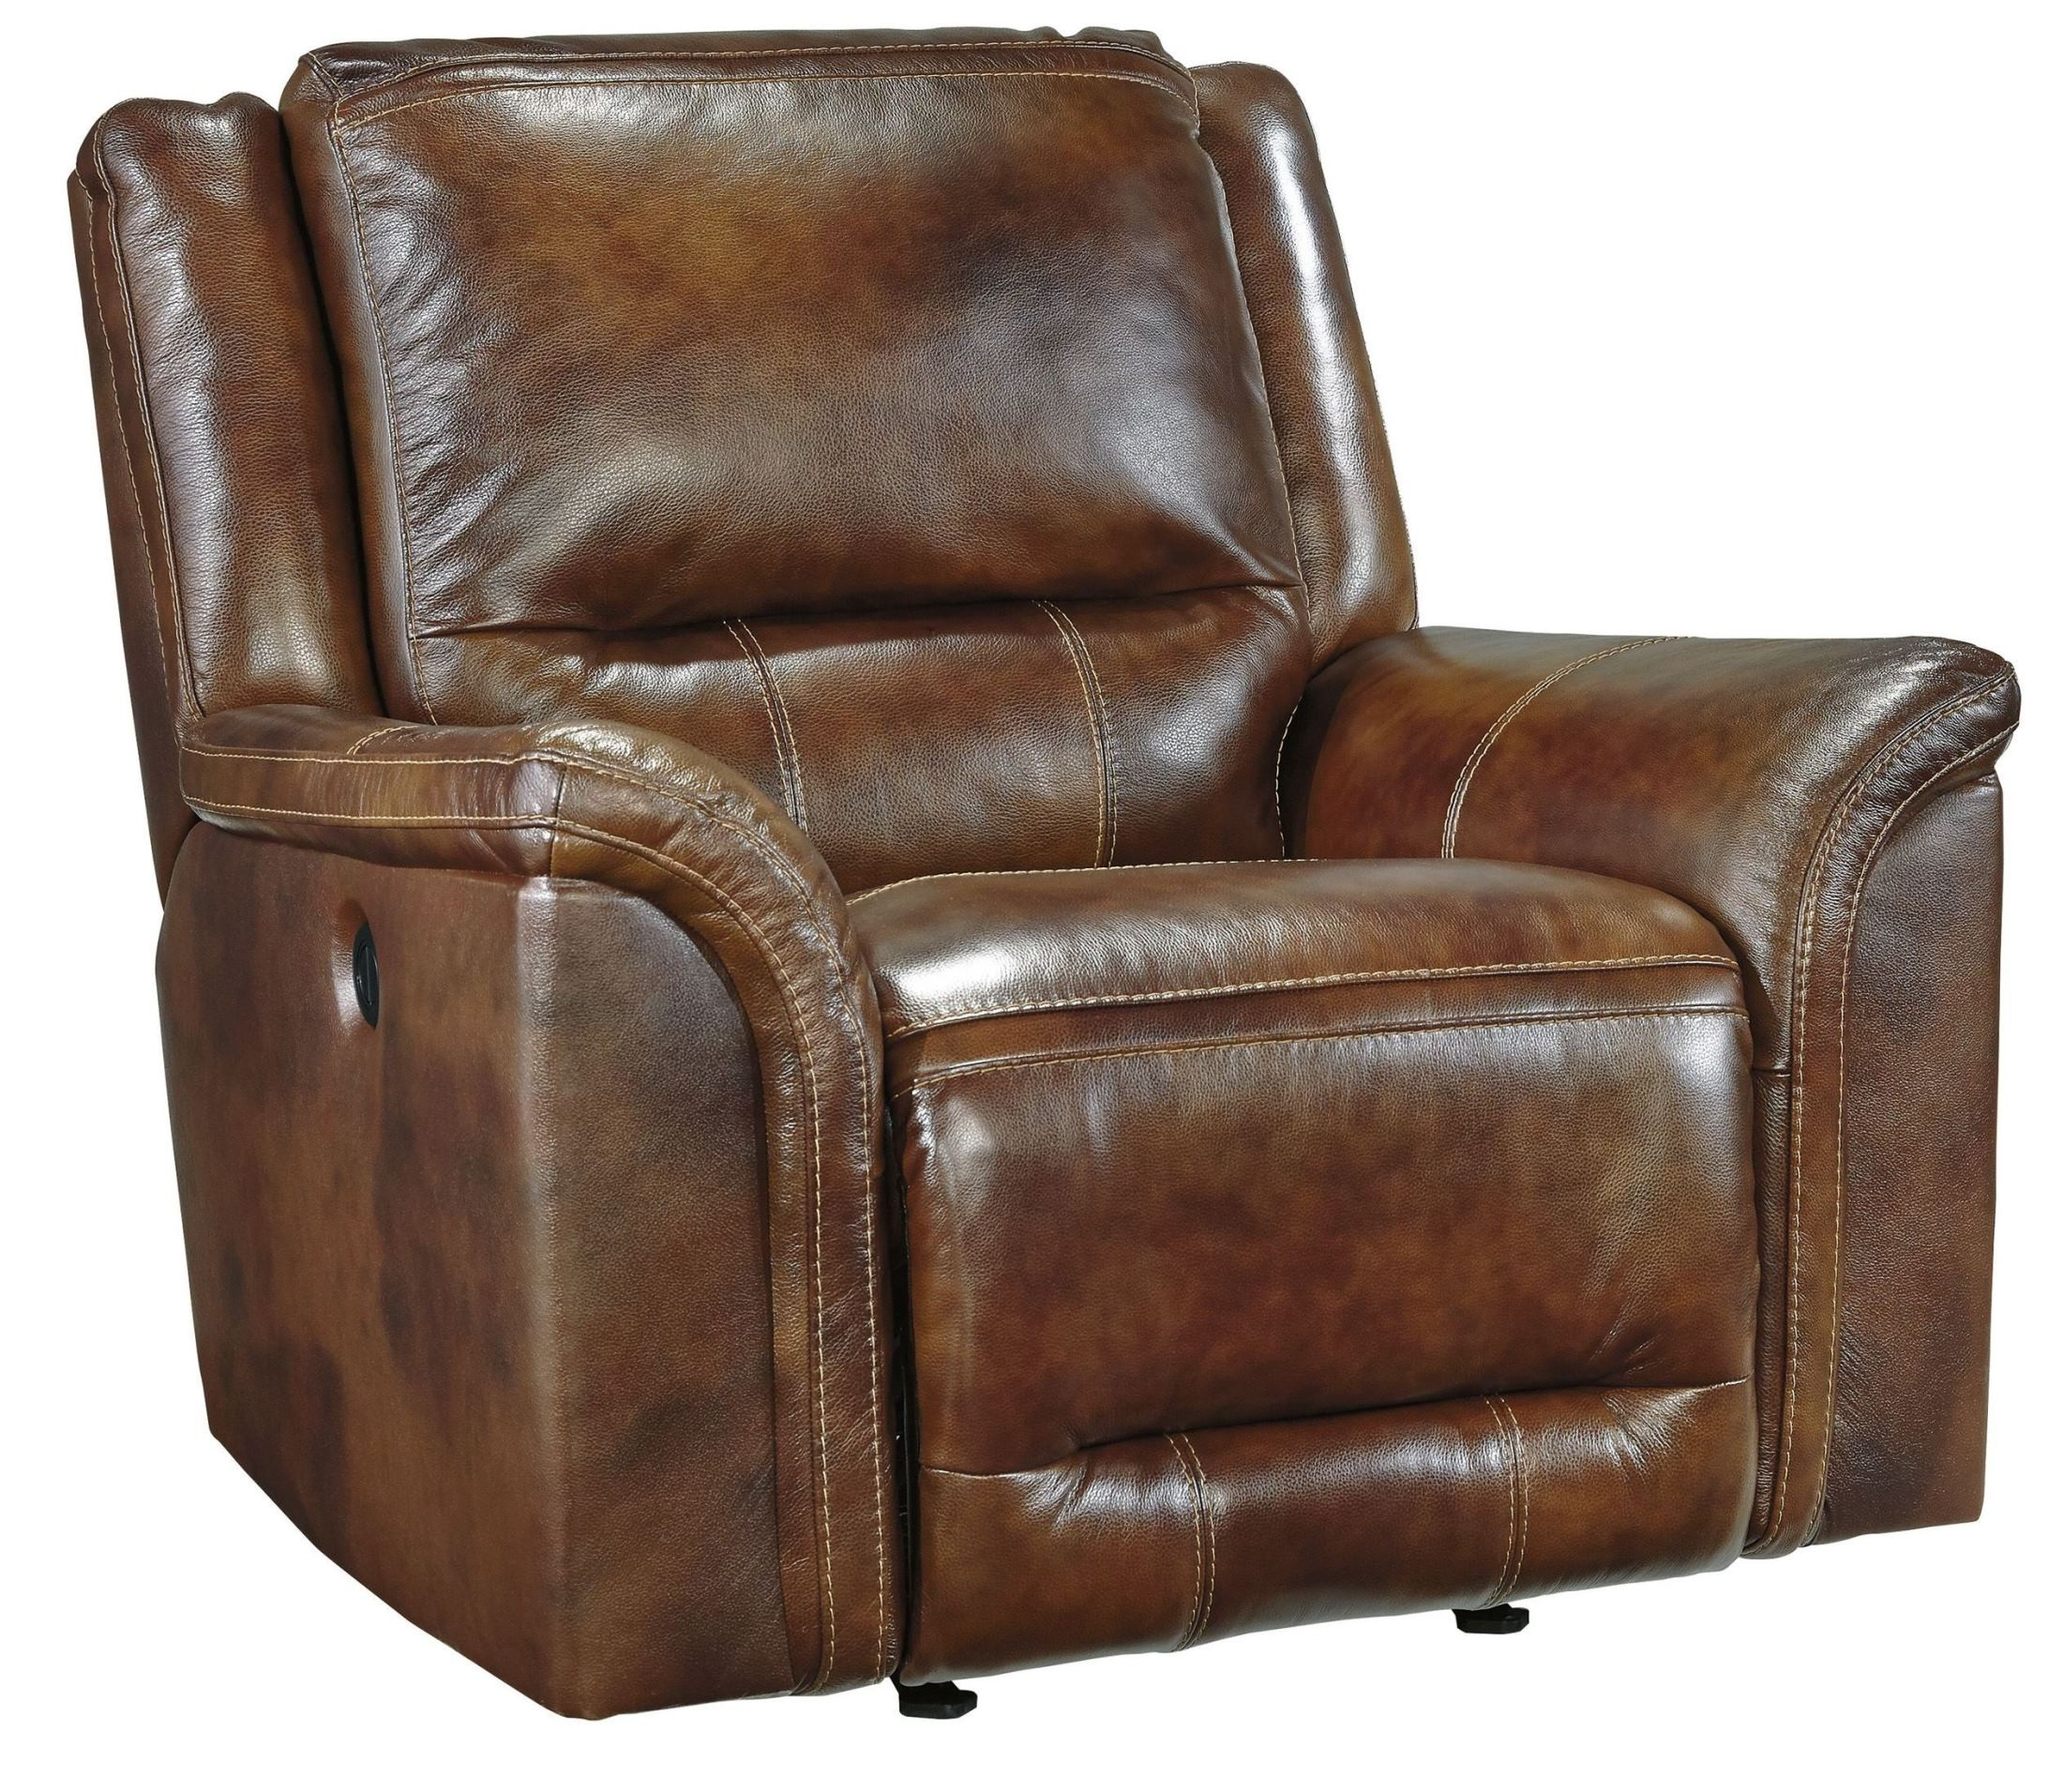 Jayron Harness Reclining Sectional from Ashley U 81 94